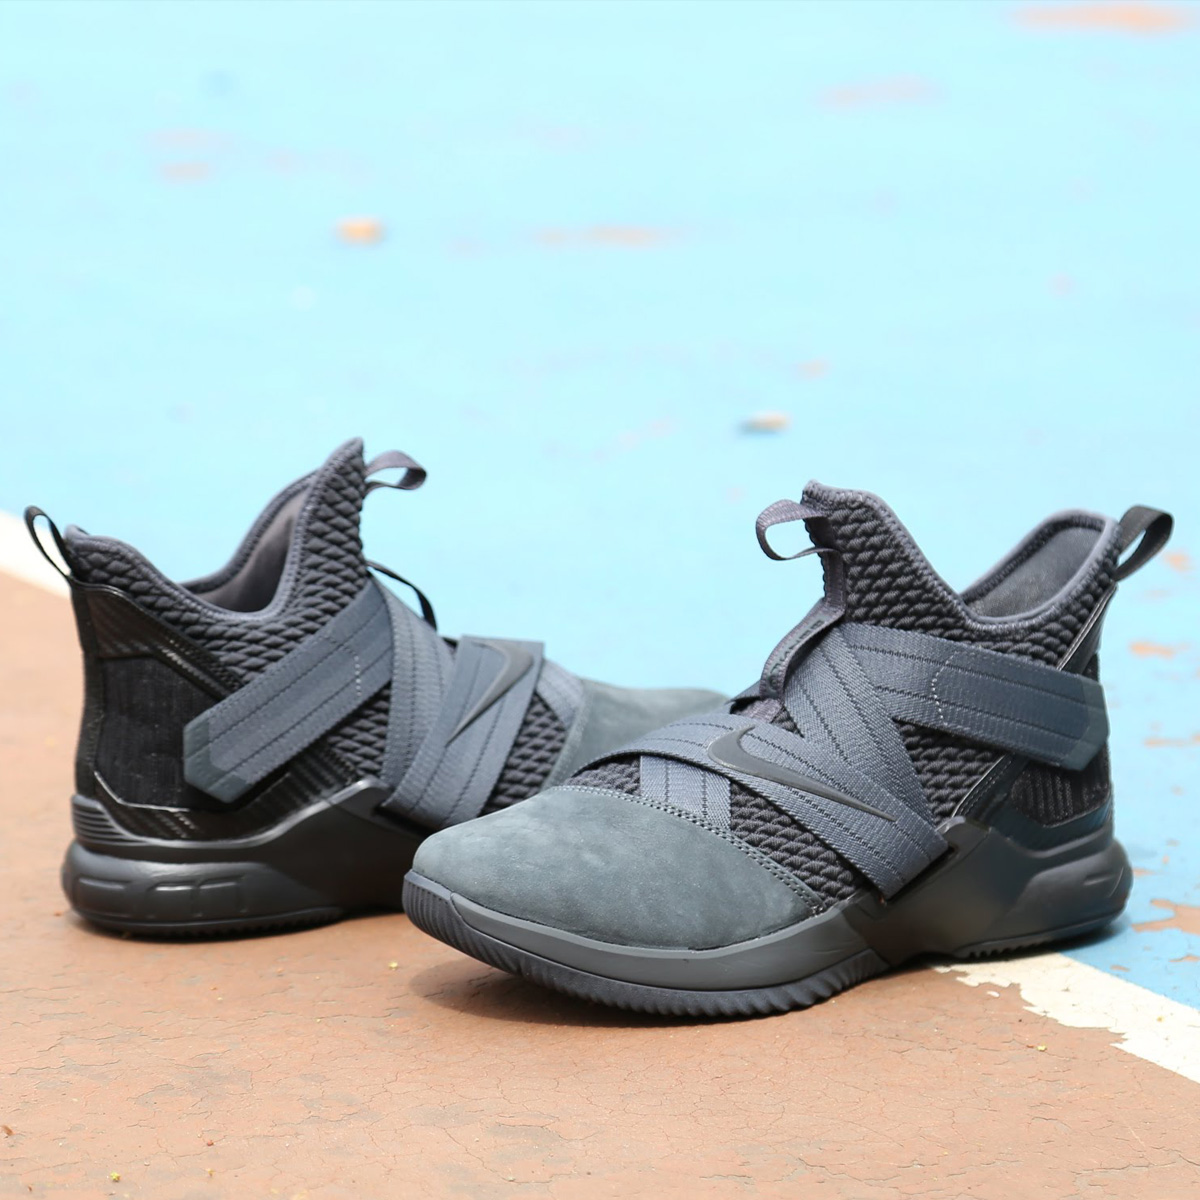 NIKE LEBRON SOLDIER XII SFG EP (ナイキ レブロン ソルジャー XII SFG EP) ANTHRACITE/ANTHRACITE-BLACK【メンズ スニーカー】18SU-S